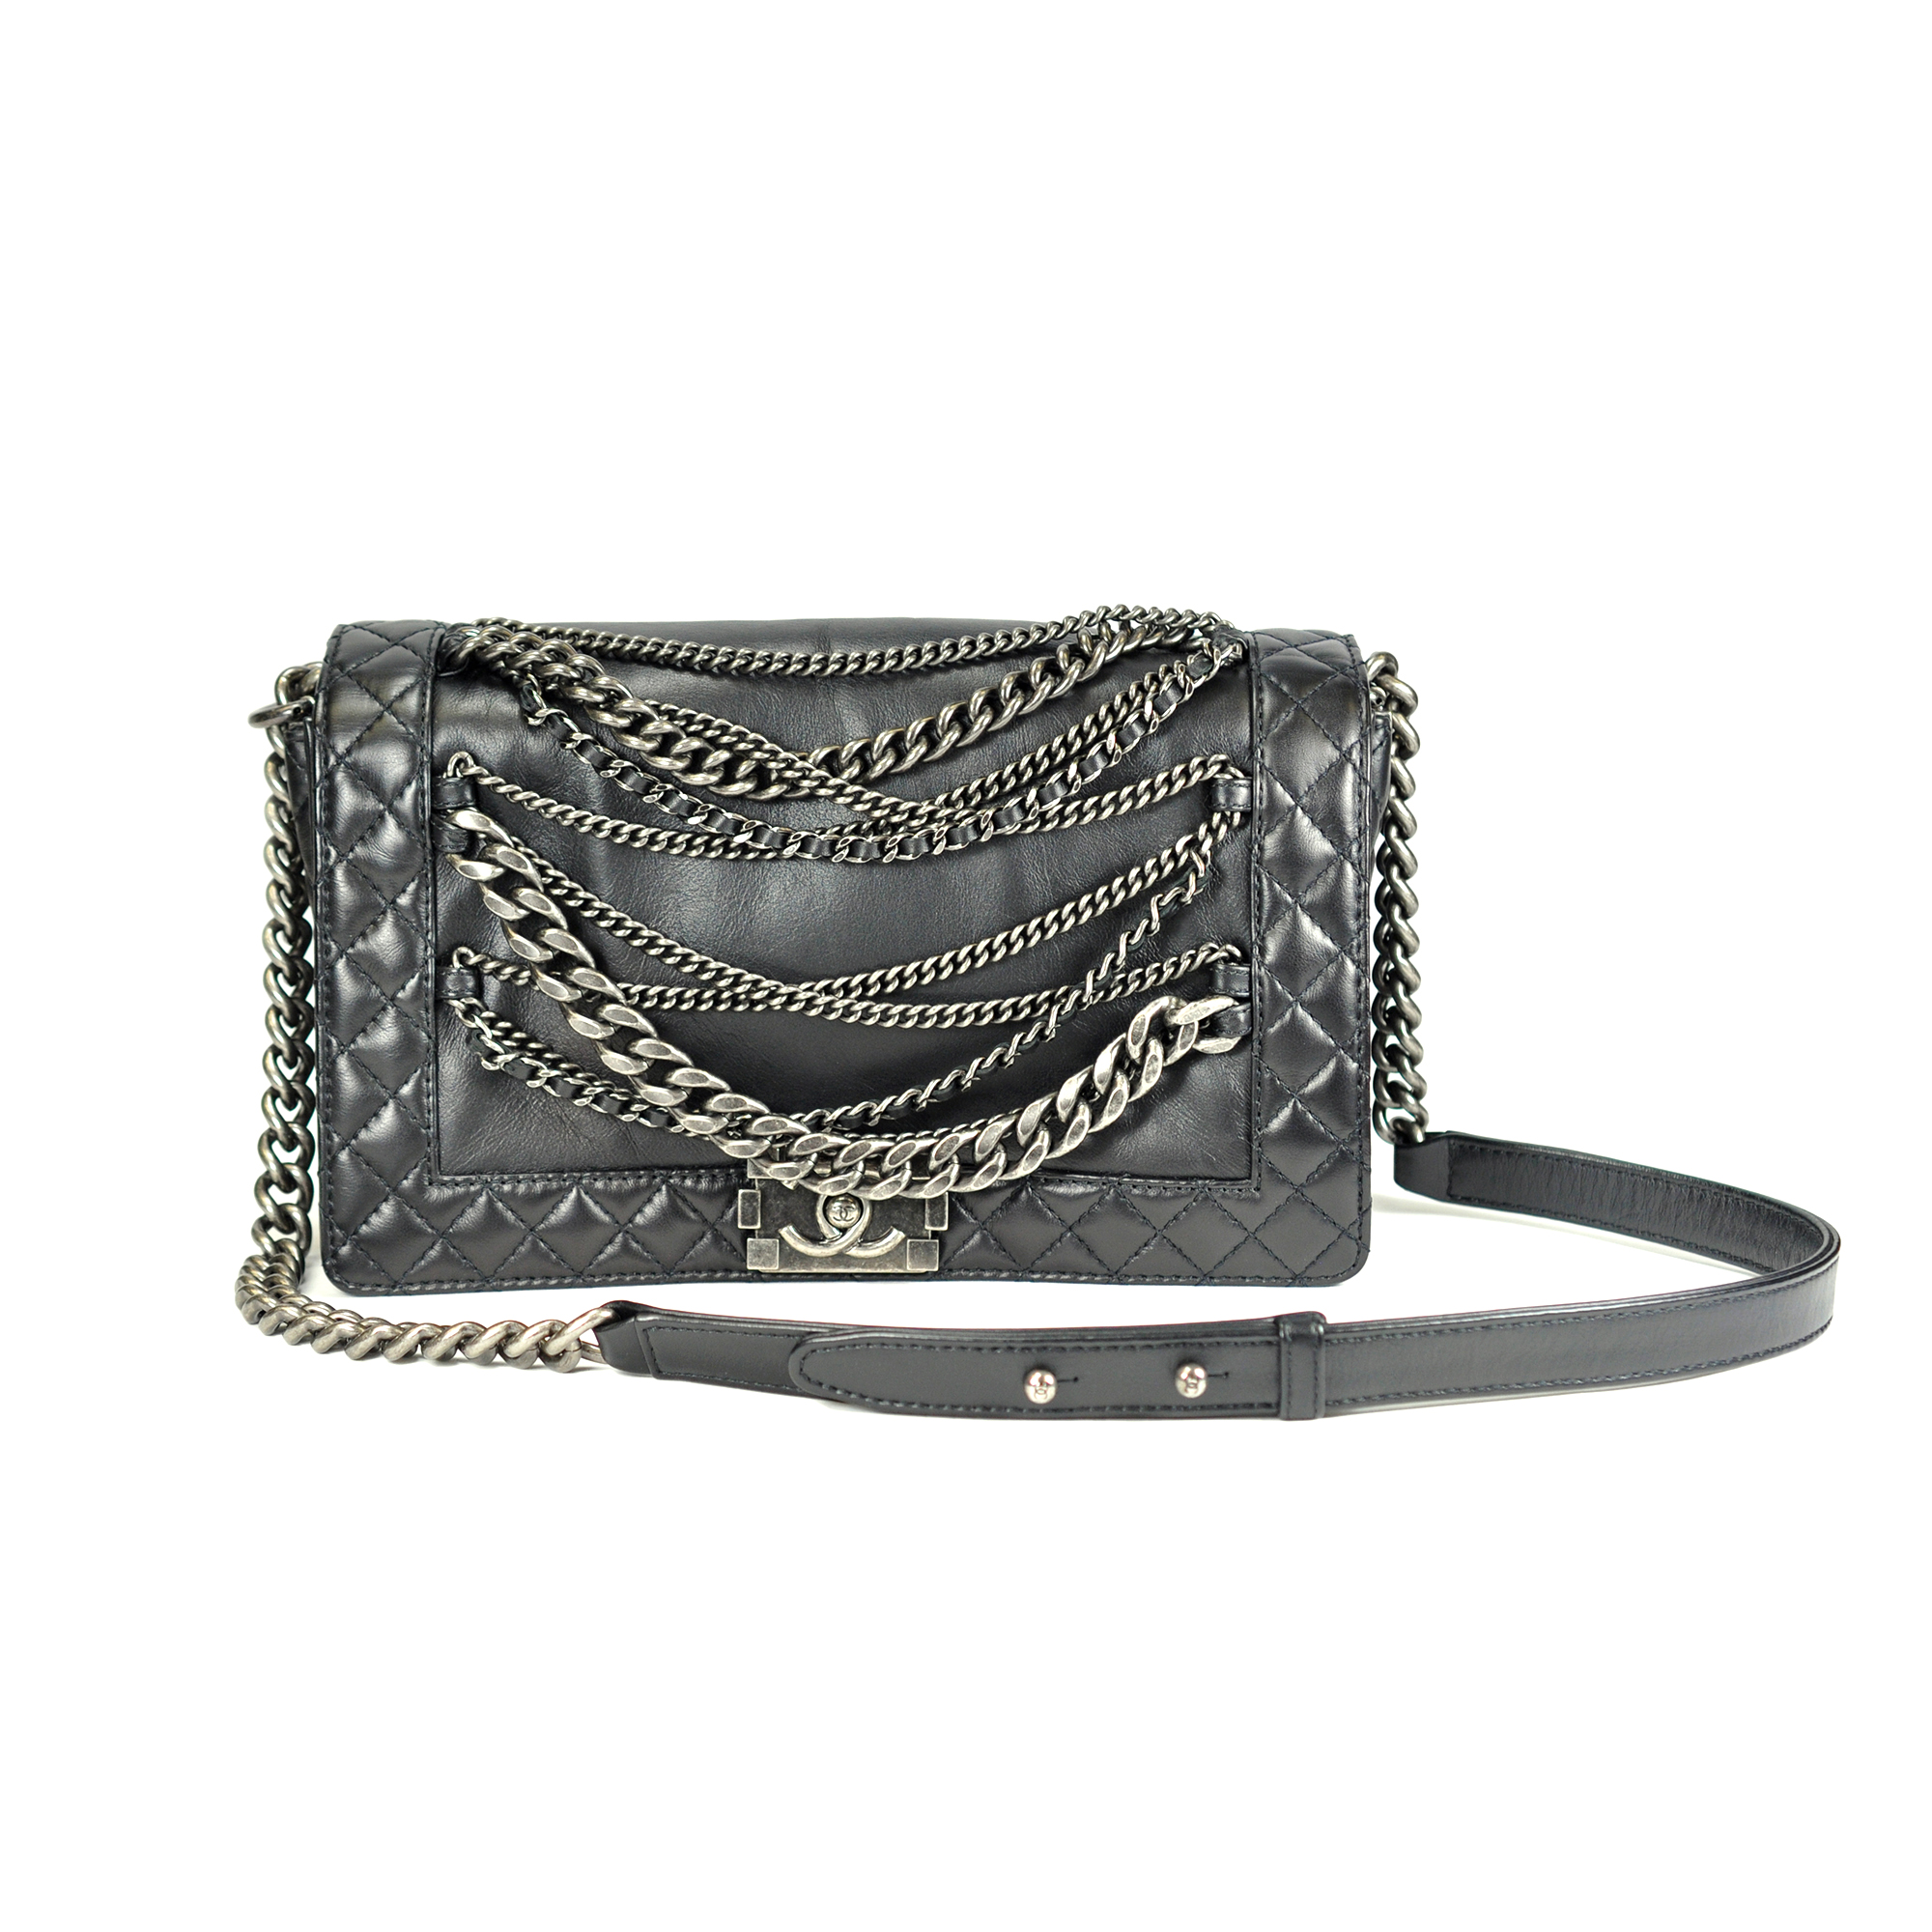 02bd9168da5c Authentic Second Hand Chanel Enchained Boy Bag (PSS-048-00009)   THE FIFTH  COLLECTION